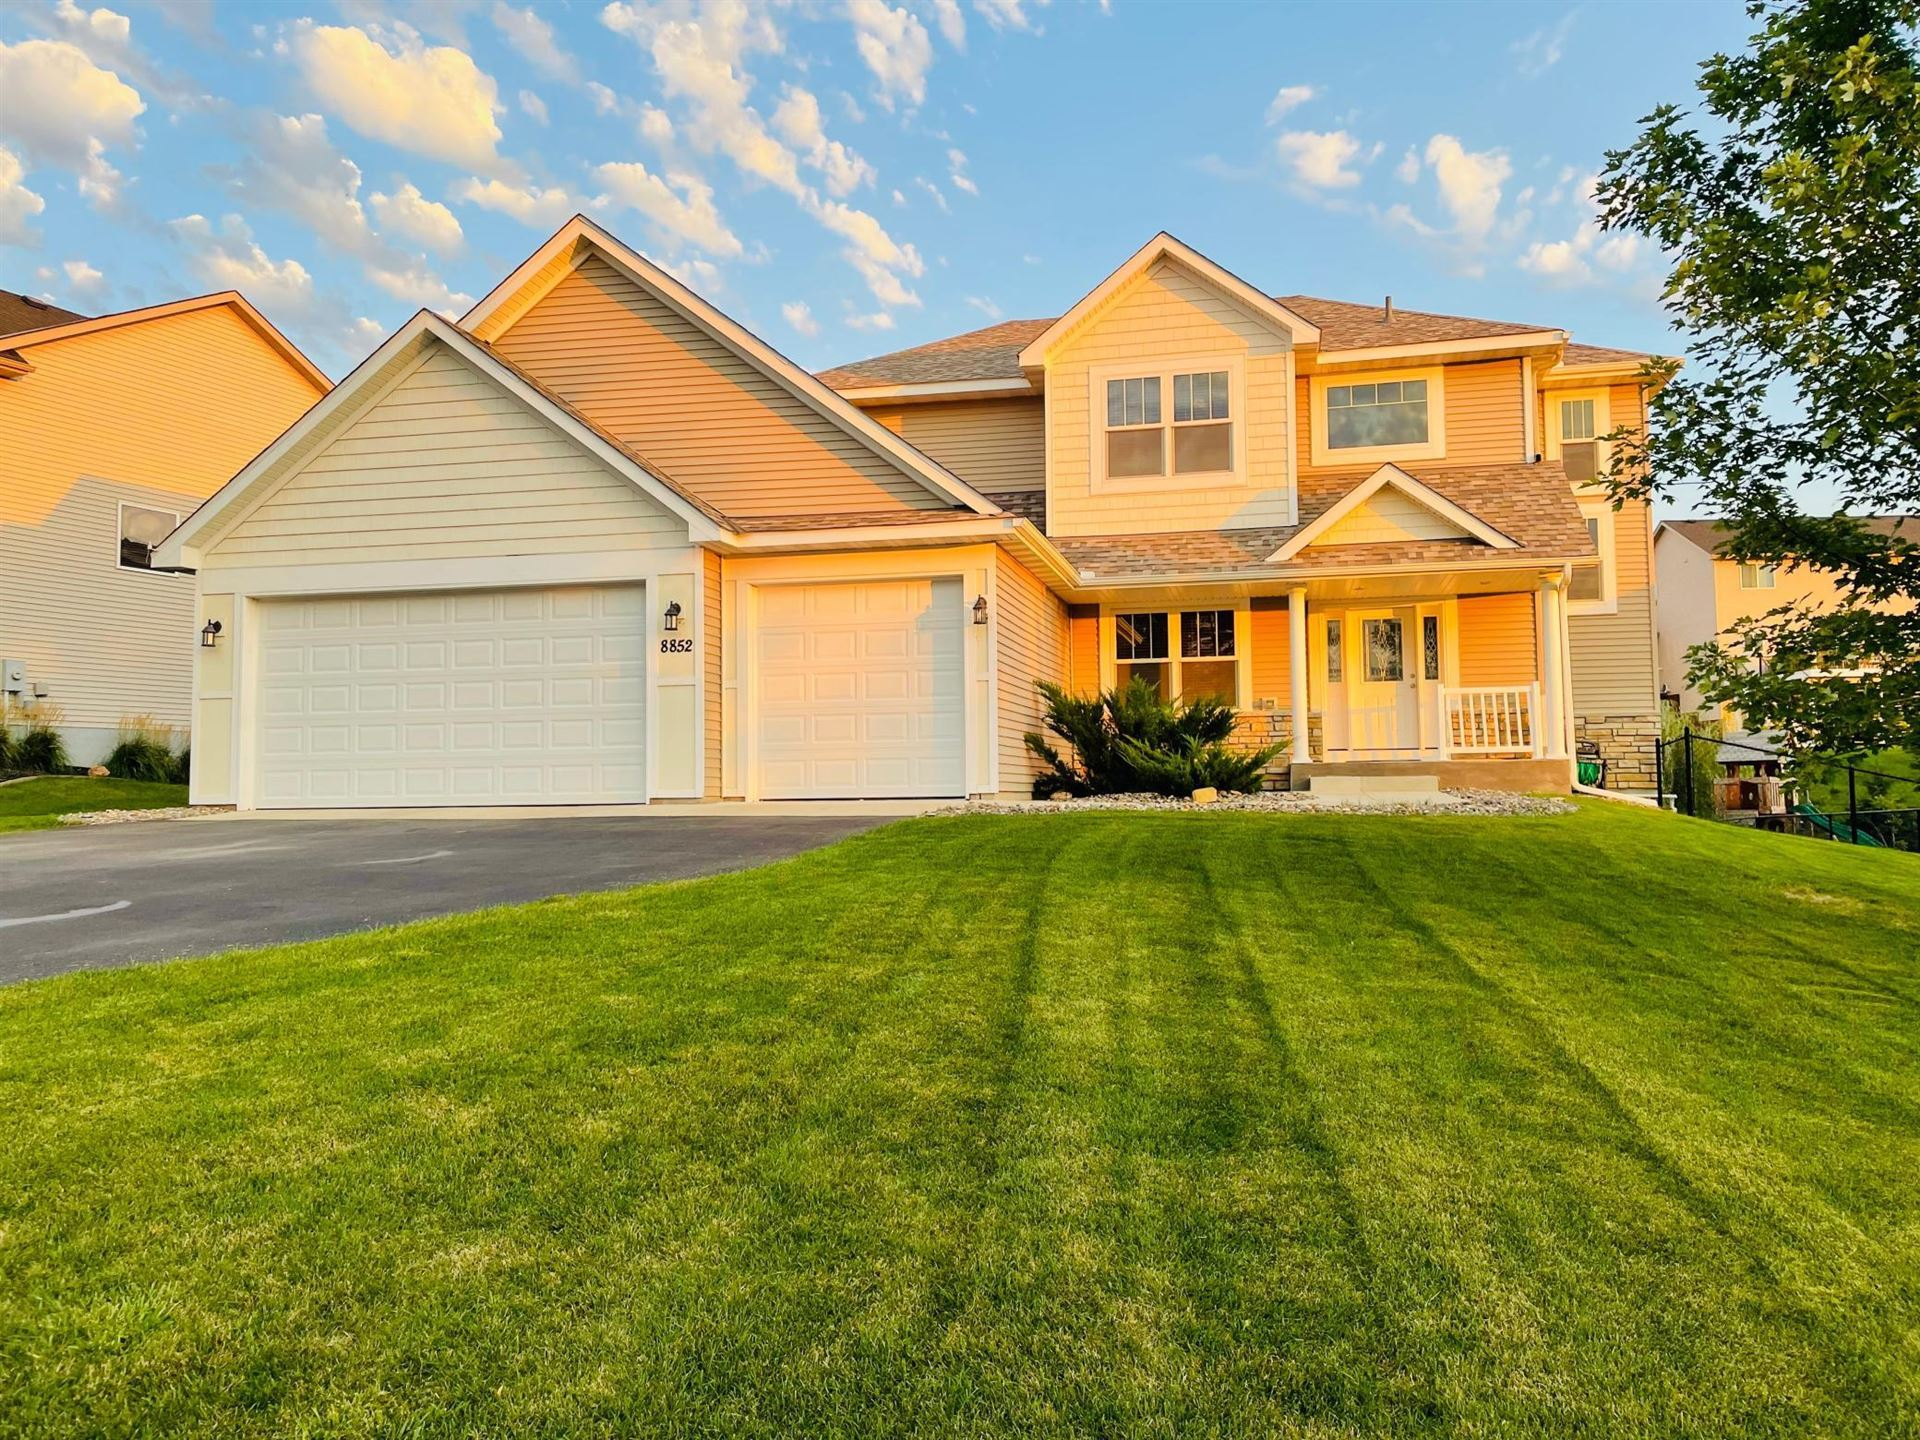 Photo of 8852 196th Street W, Lakeville, MN 55044 (MLS # 6100919)